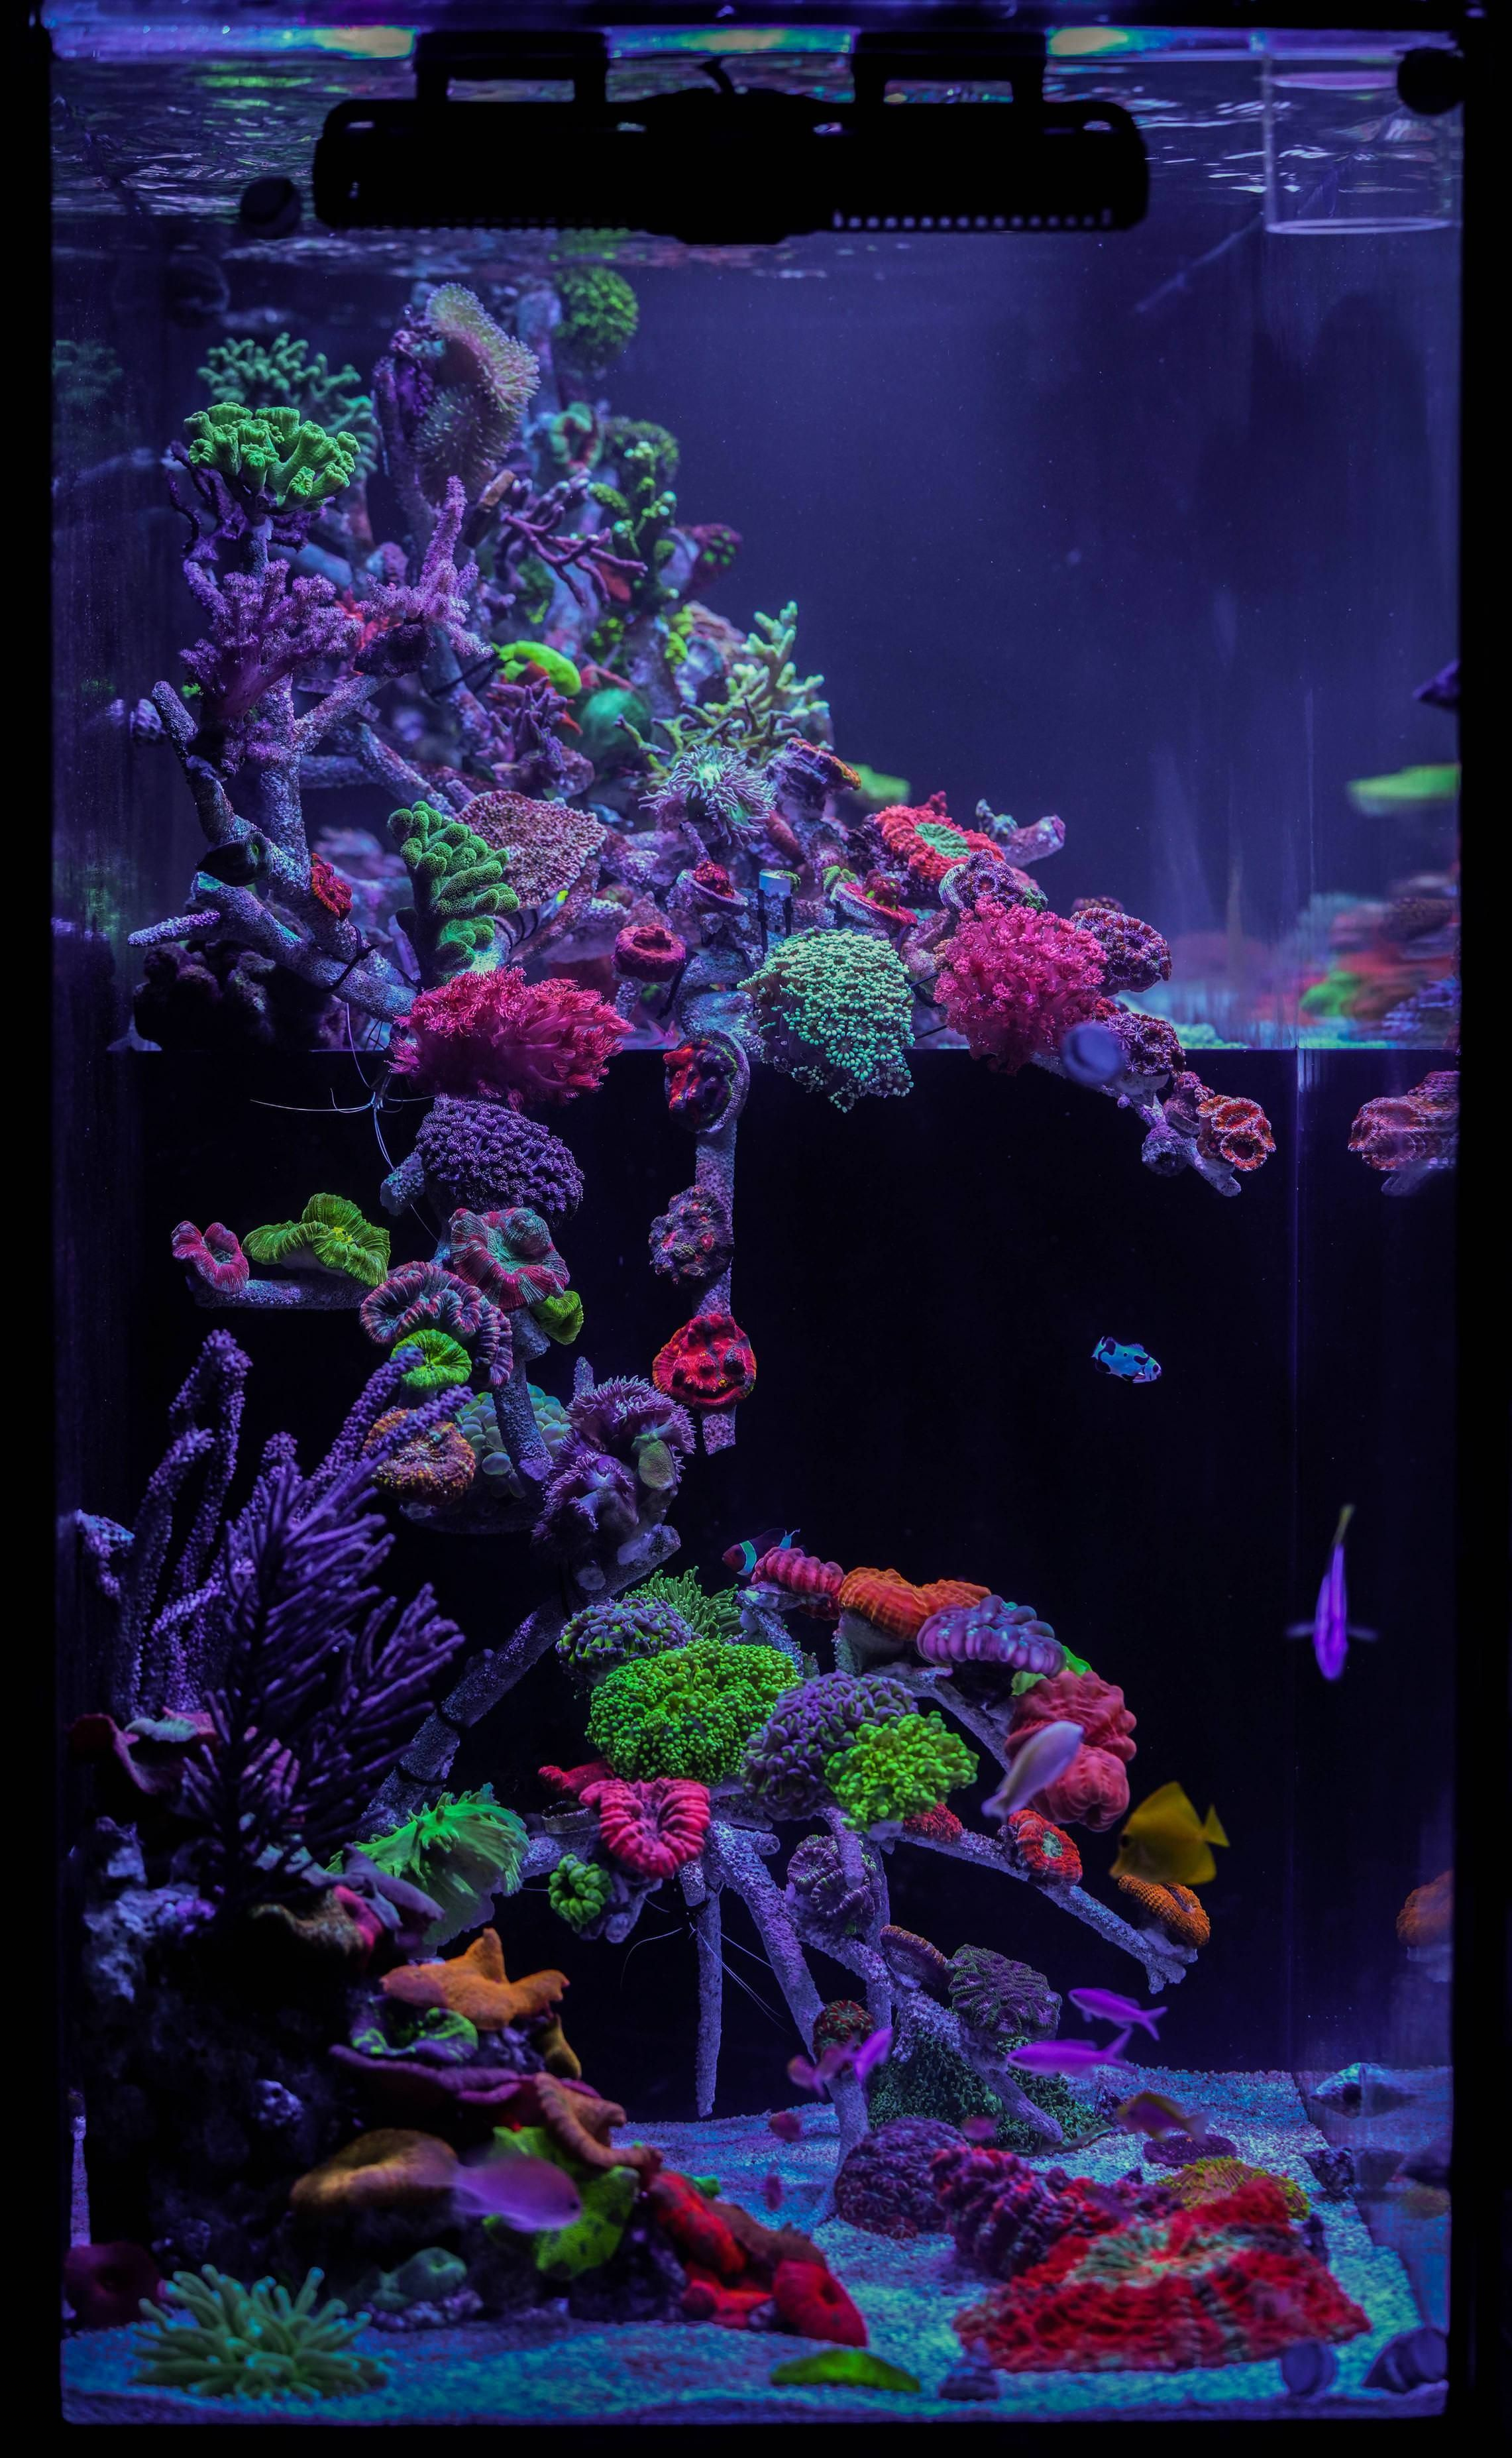 What Do You Think Are The Most Anticipated Reef Keeping Innovations Coming In 2019 Https Www Reef2reef Com Threads W Meerwasser Aquarium Meerwasser Aquarium